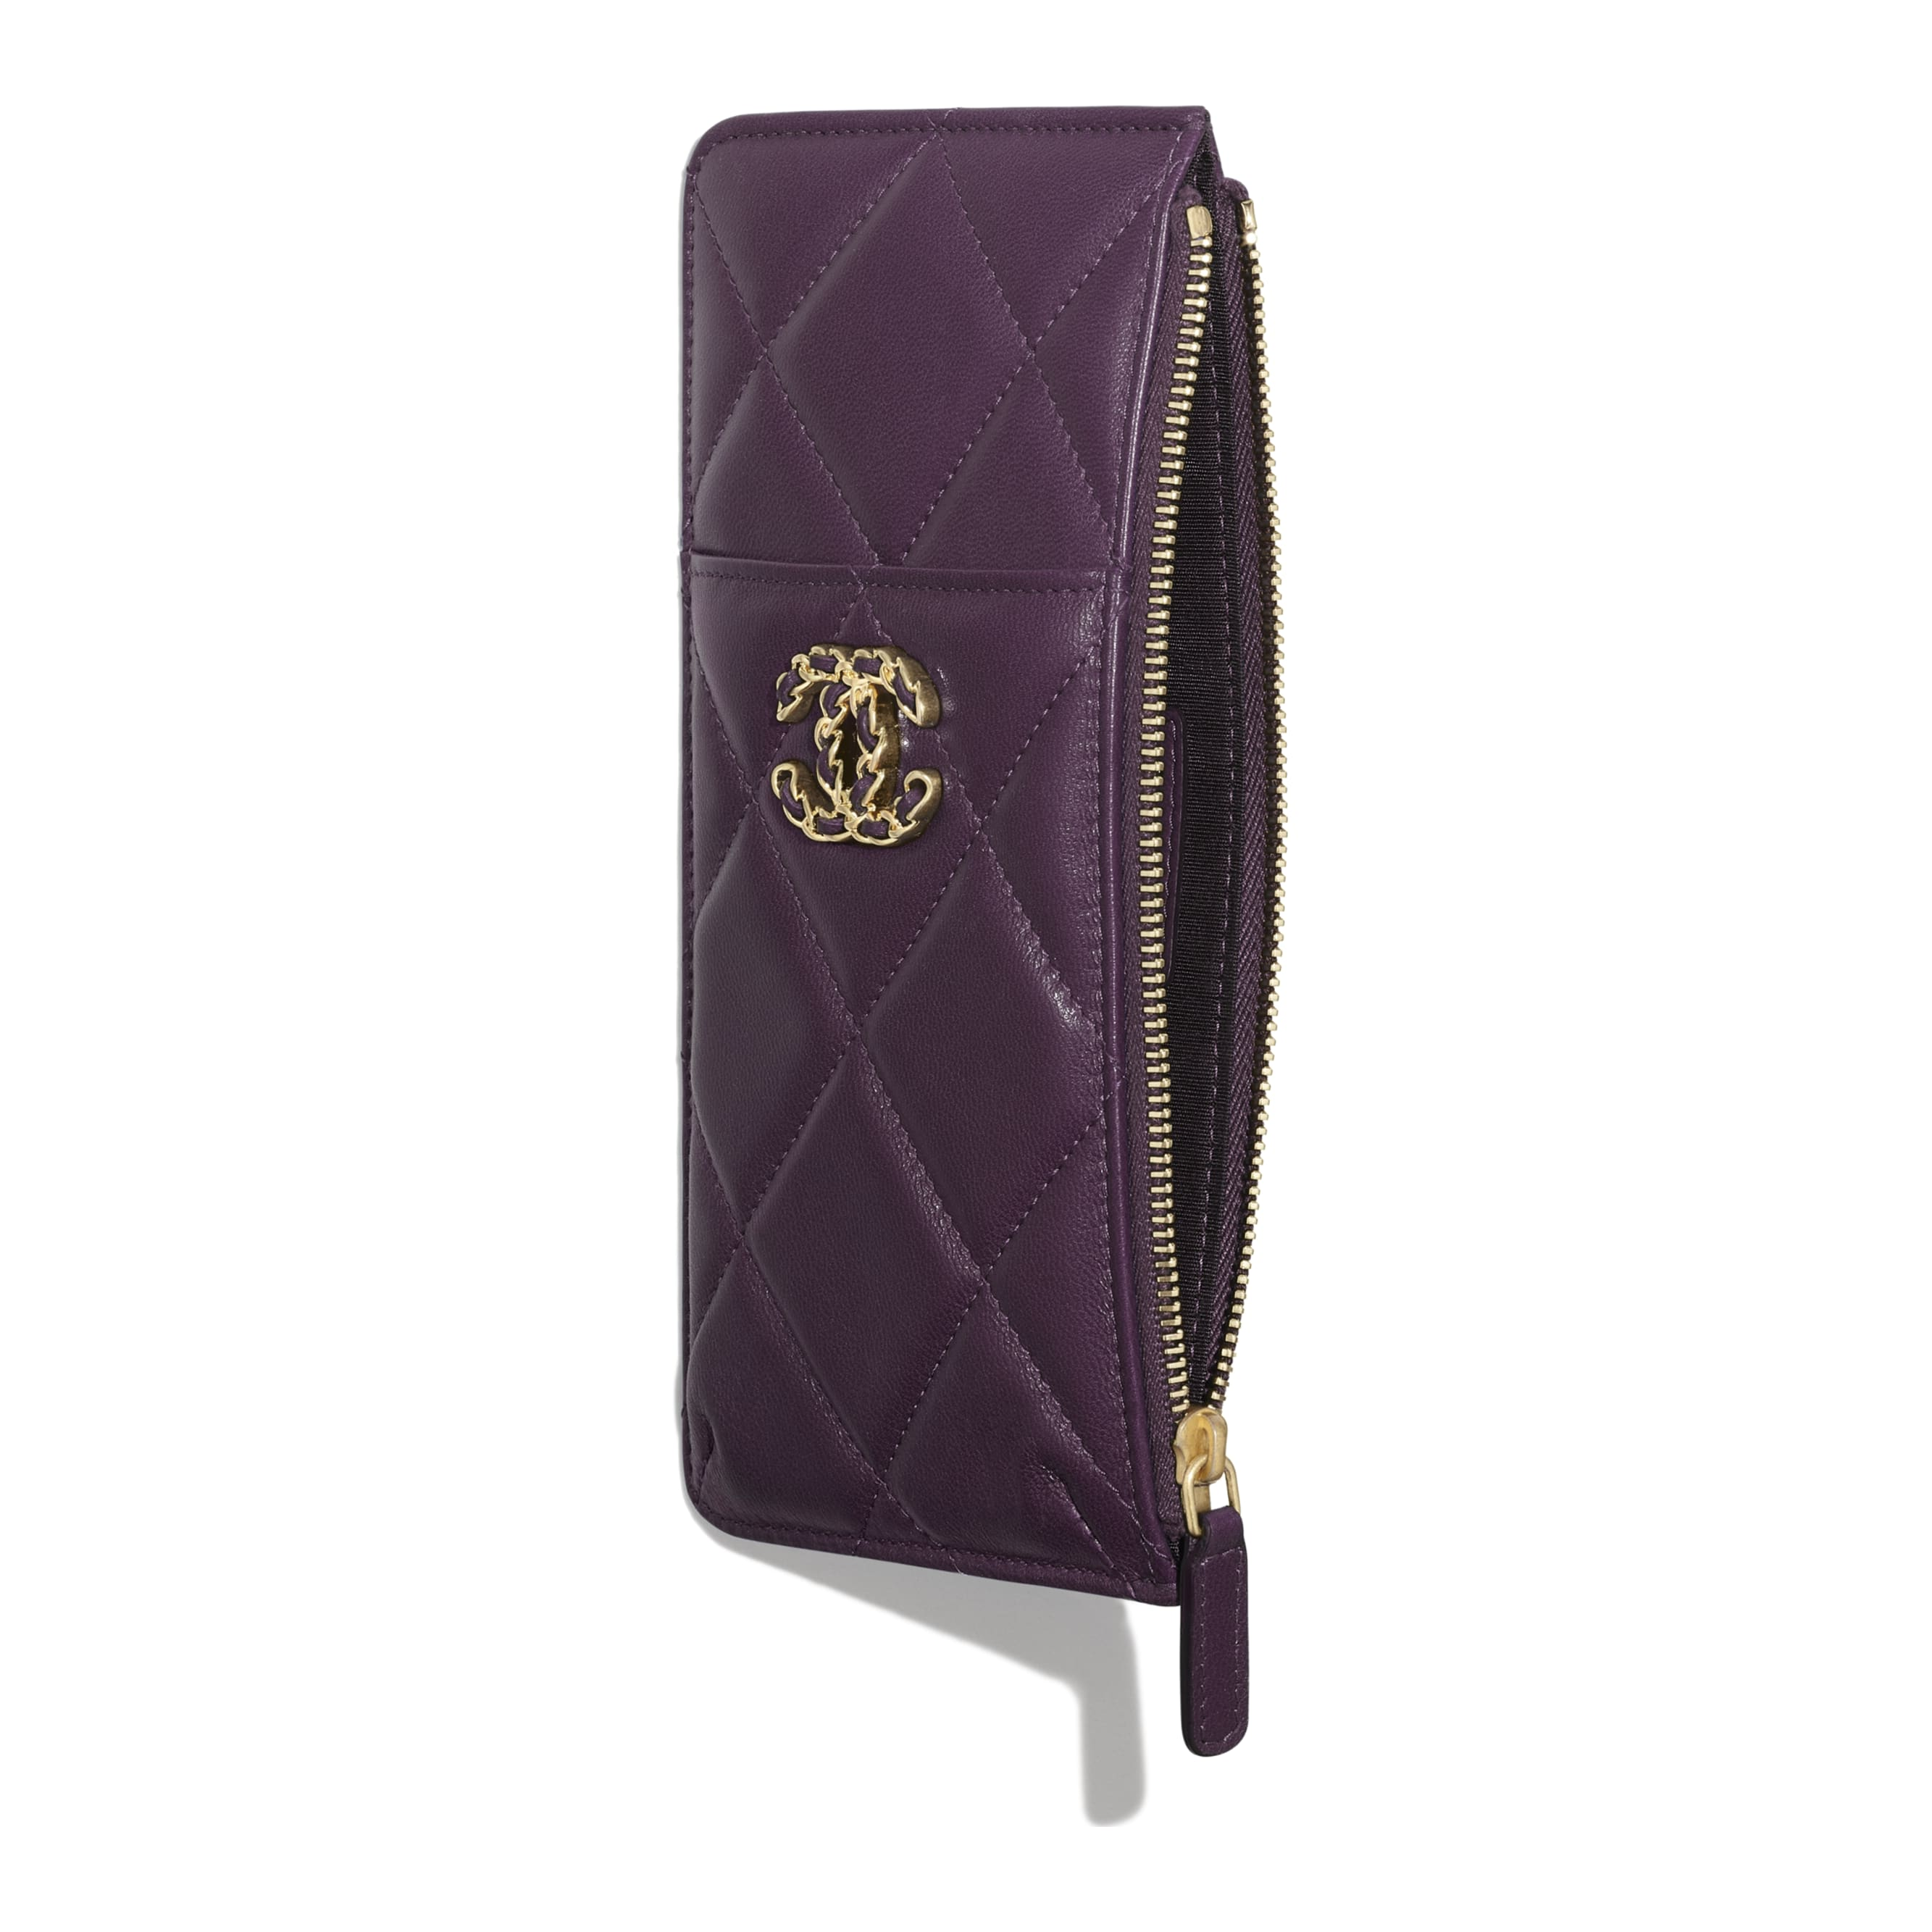 CHANEL 19 Phone & Card Holder - Purple - Shiny Goatskin & Gold-Tone Metal - CHANEL - Other view - see standard sized version